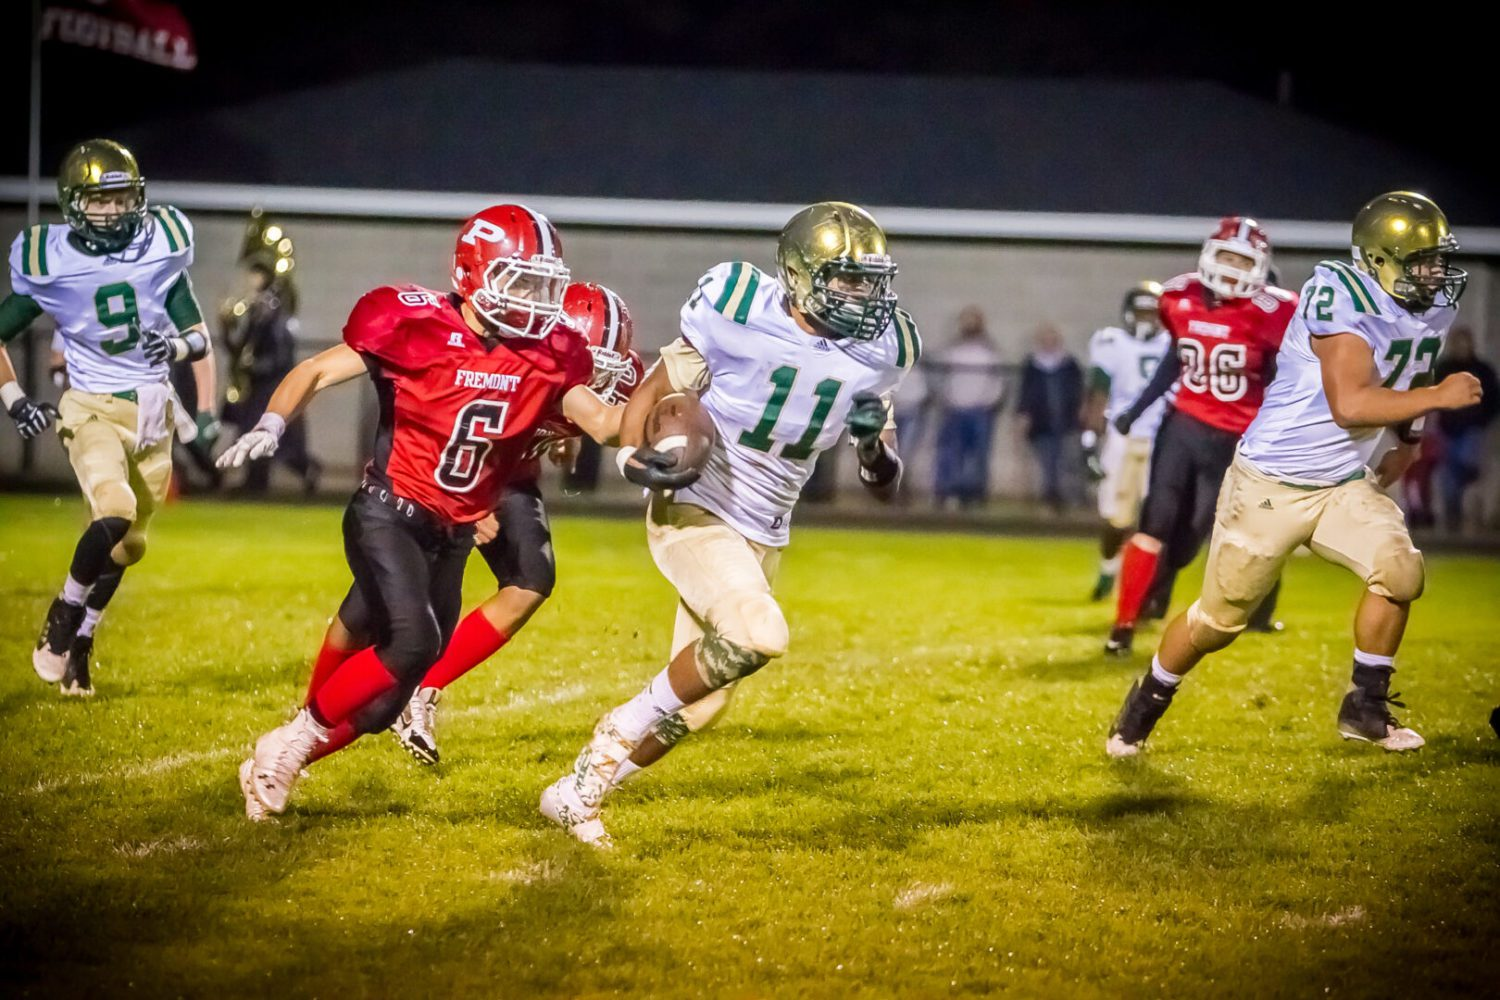 Muskegon Catholic continues romp through Lakes 8 by downing Fremont 55-7